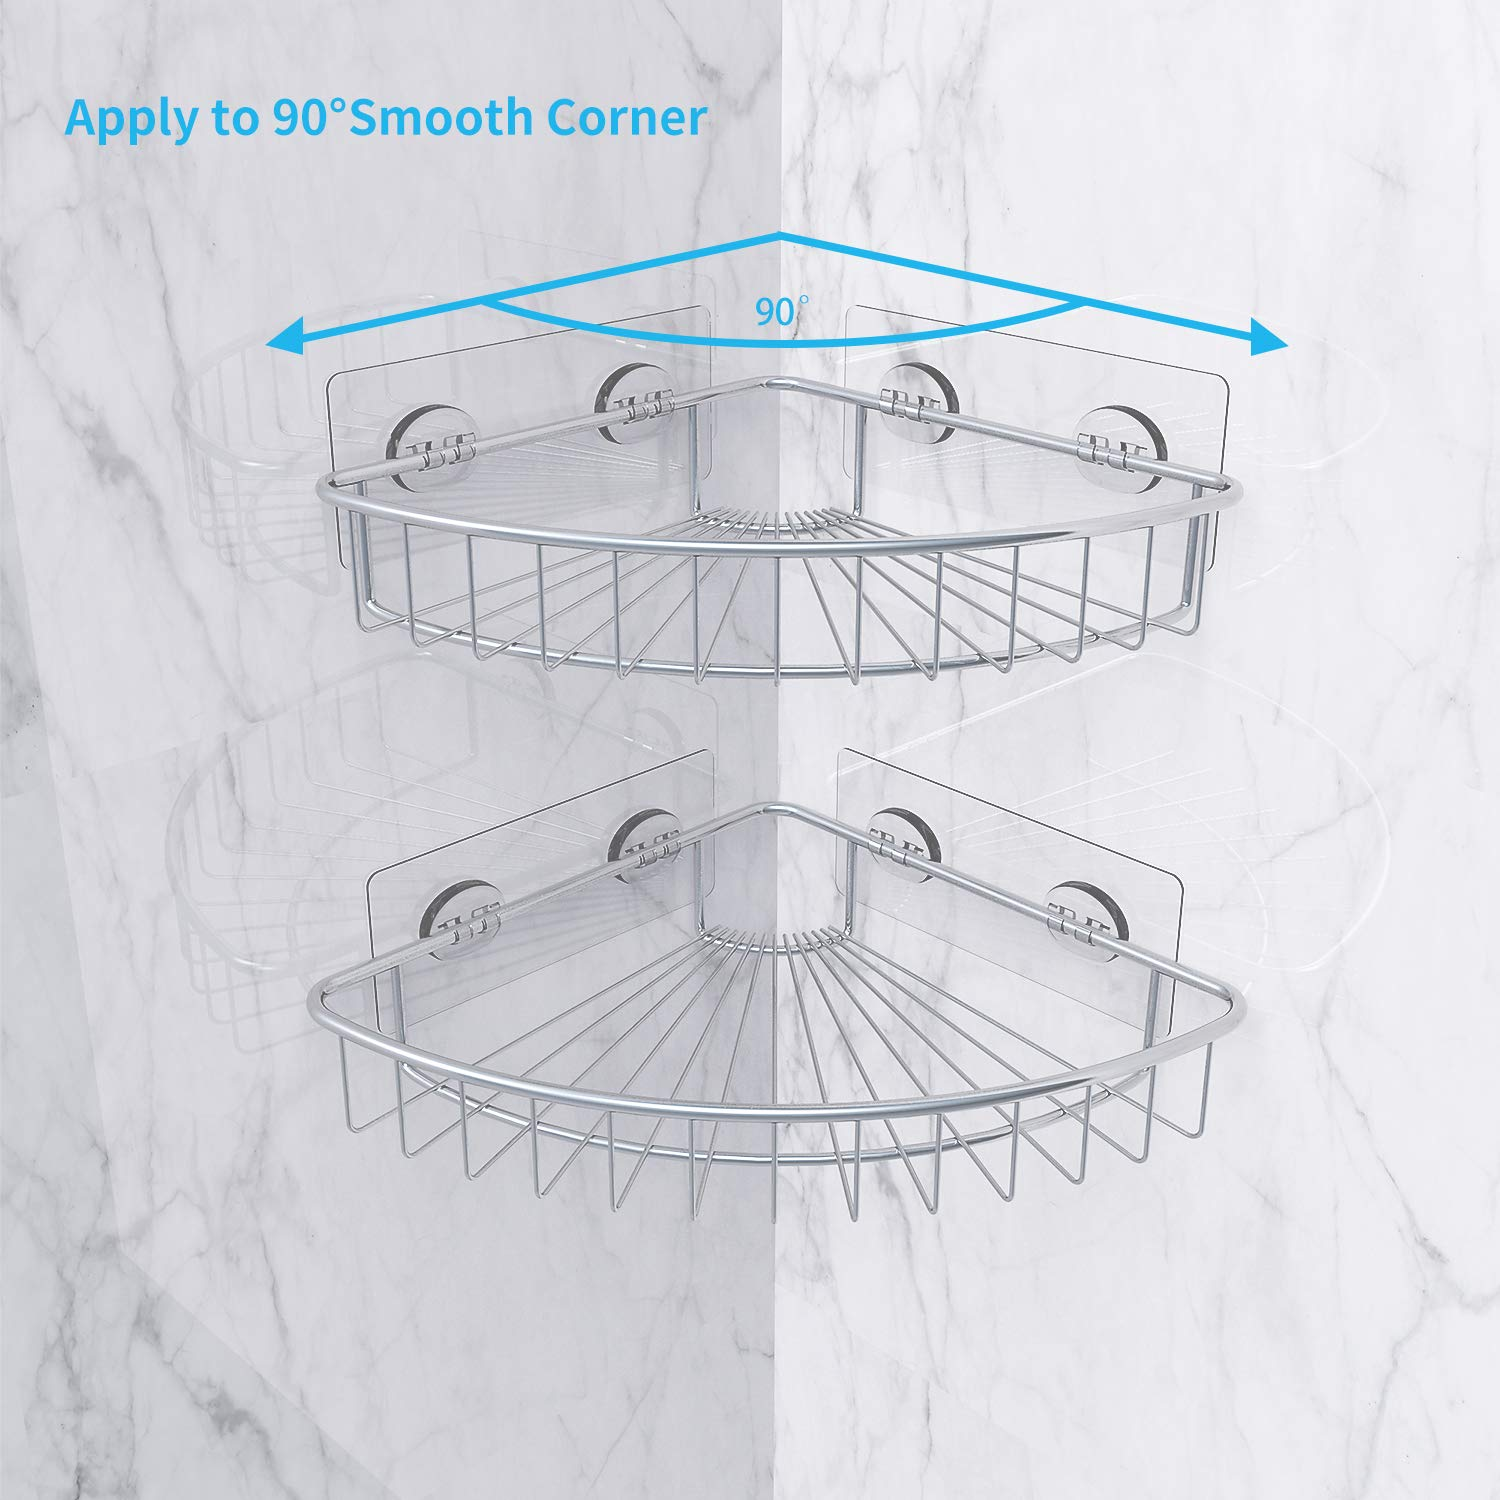 SMARTAKE 2-Pack Corner Shower Caddy, SUS304 Stainless Steel, Wall Mounted Bathroom Shelf with Adhesive, Storage Organizer for Toilet, Dorm and Kitchen by SMARTAKE (Image #2)